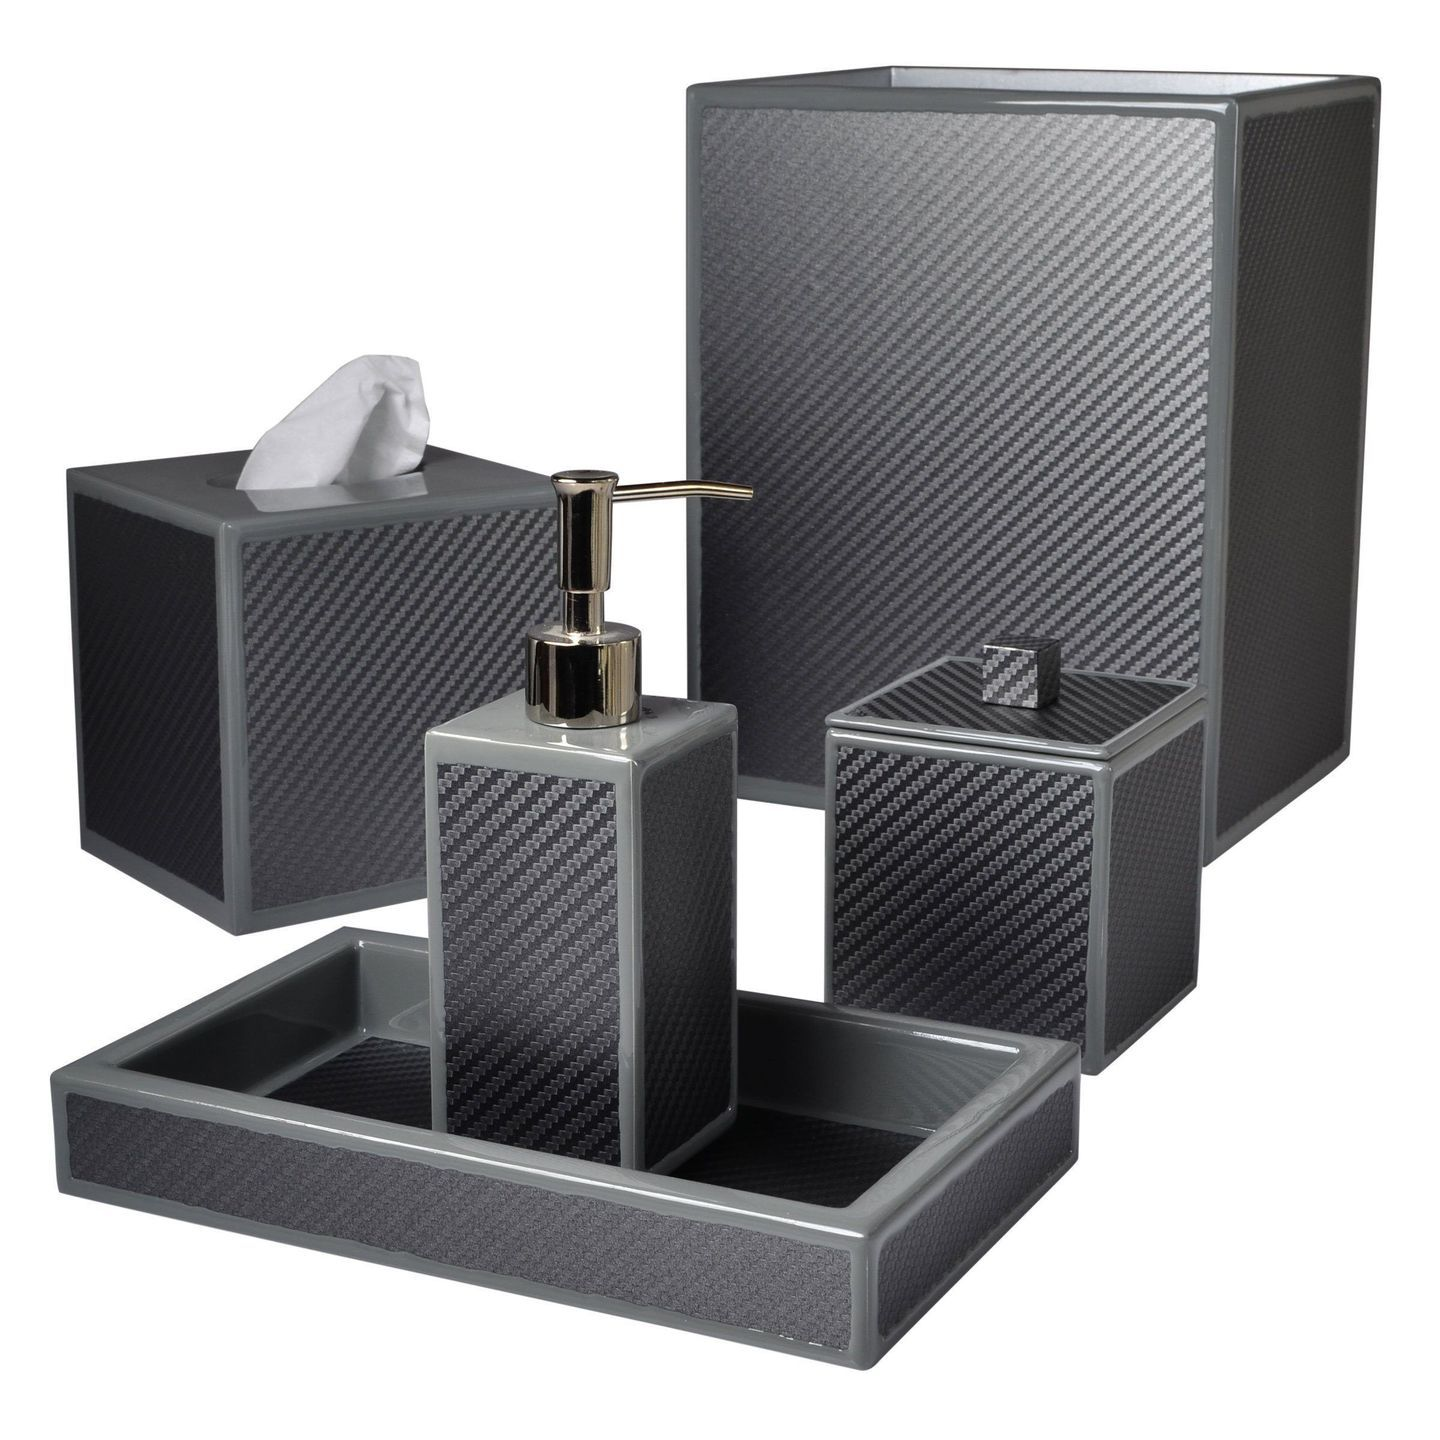 Le Mans Graphite Bath Accessories by Mike + Ally